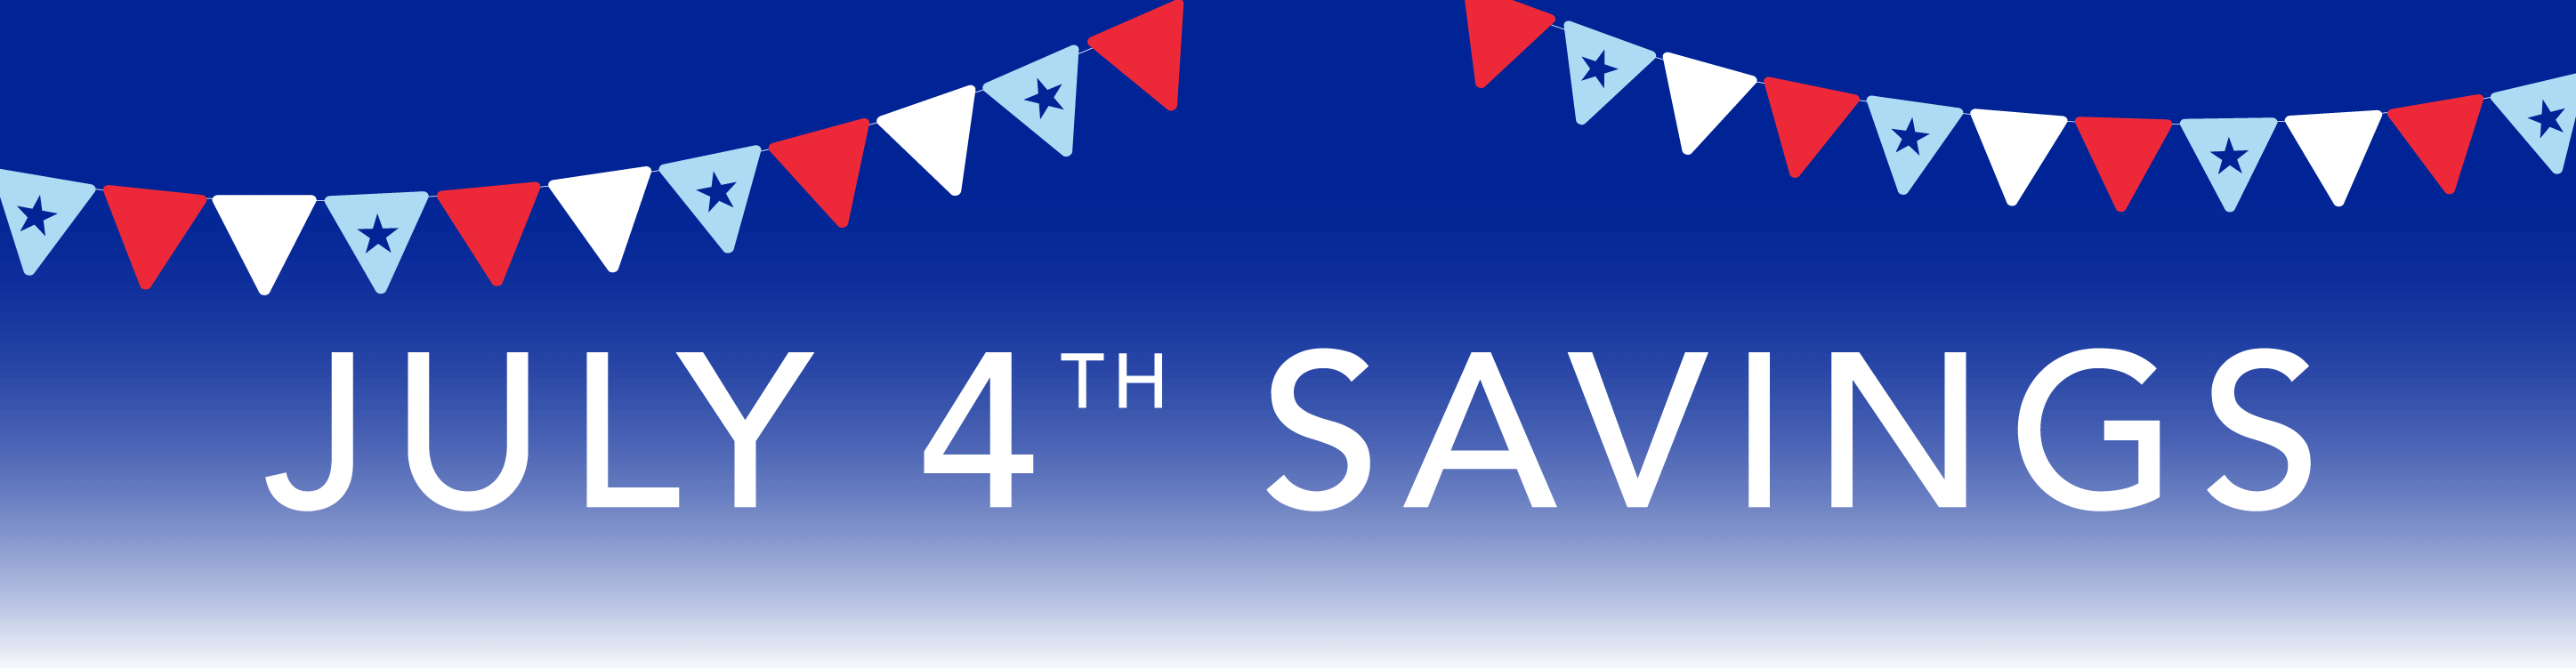 Frigidaire Professional July 4th Savings Event